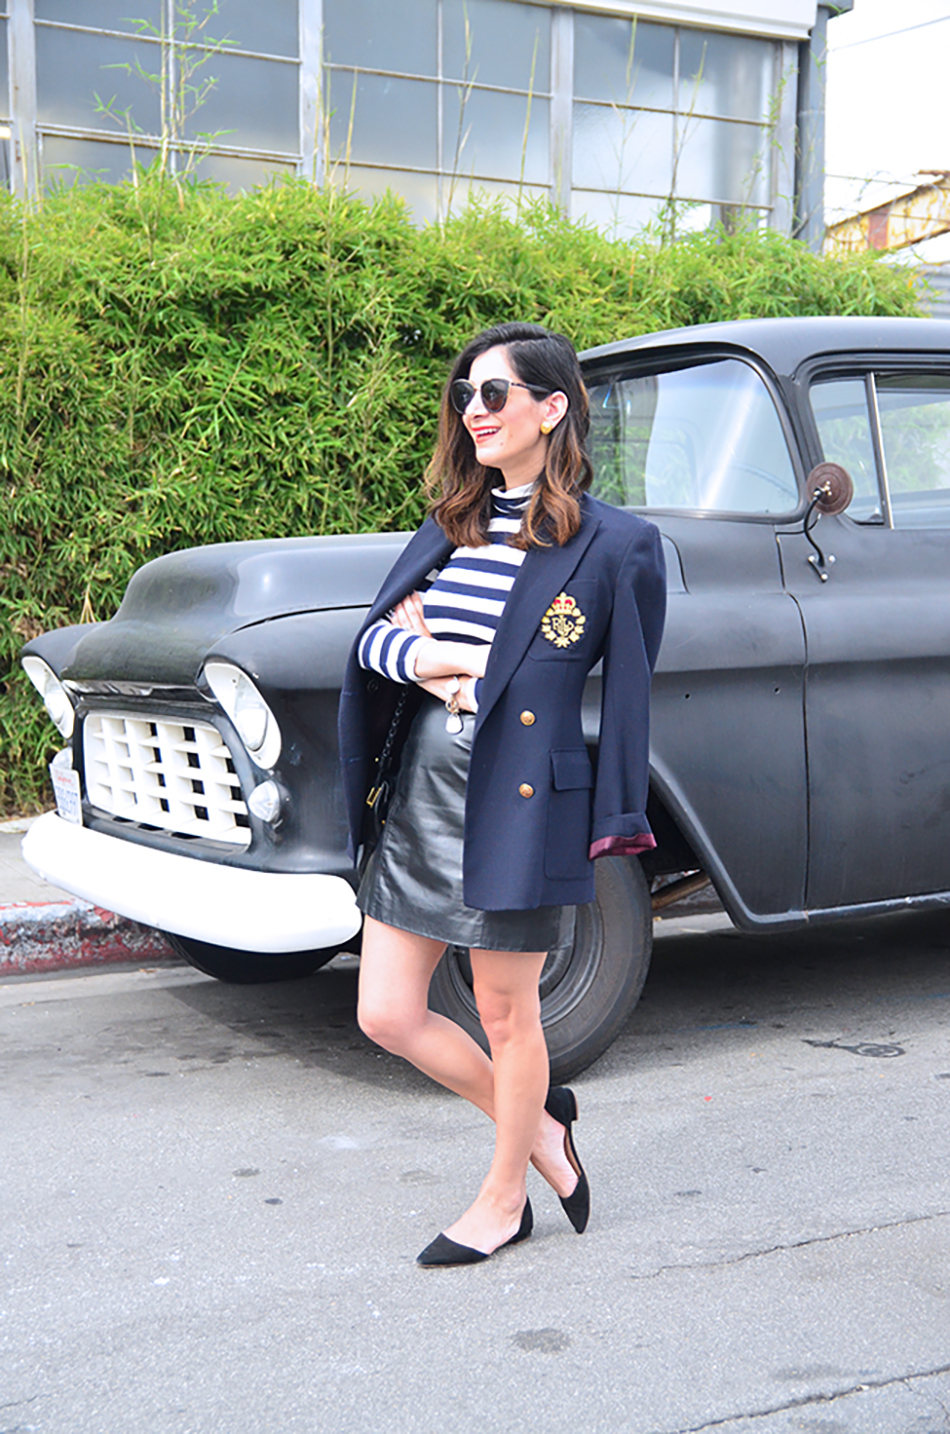 How To Wear Vintage When Pregnant